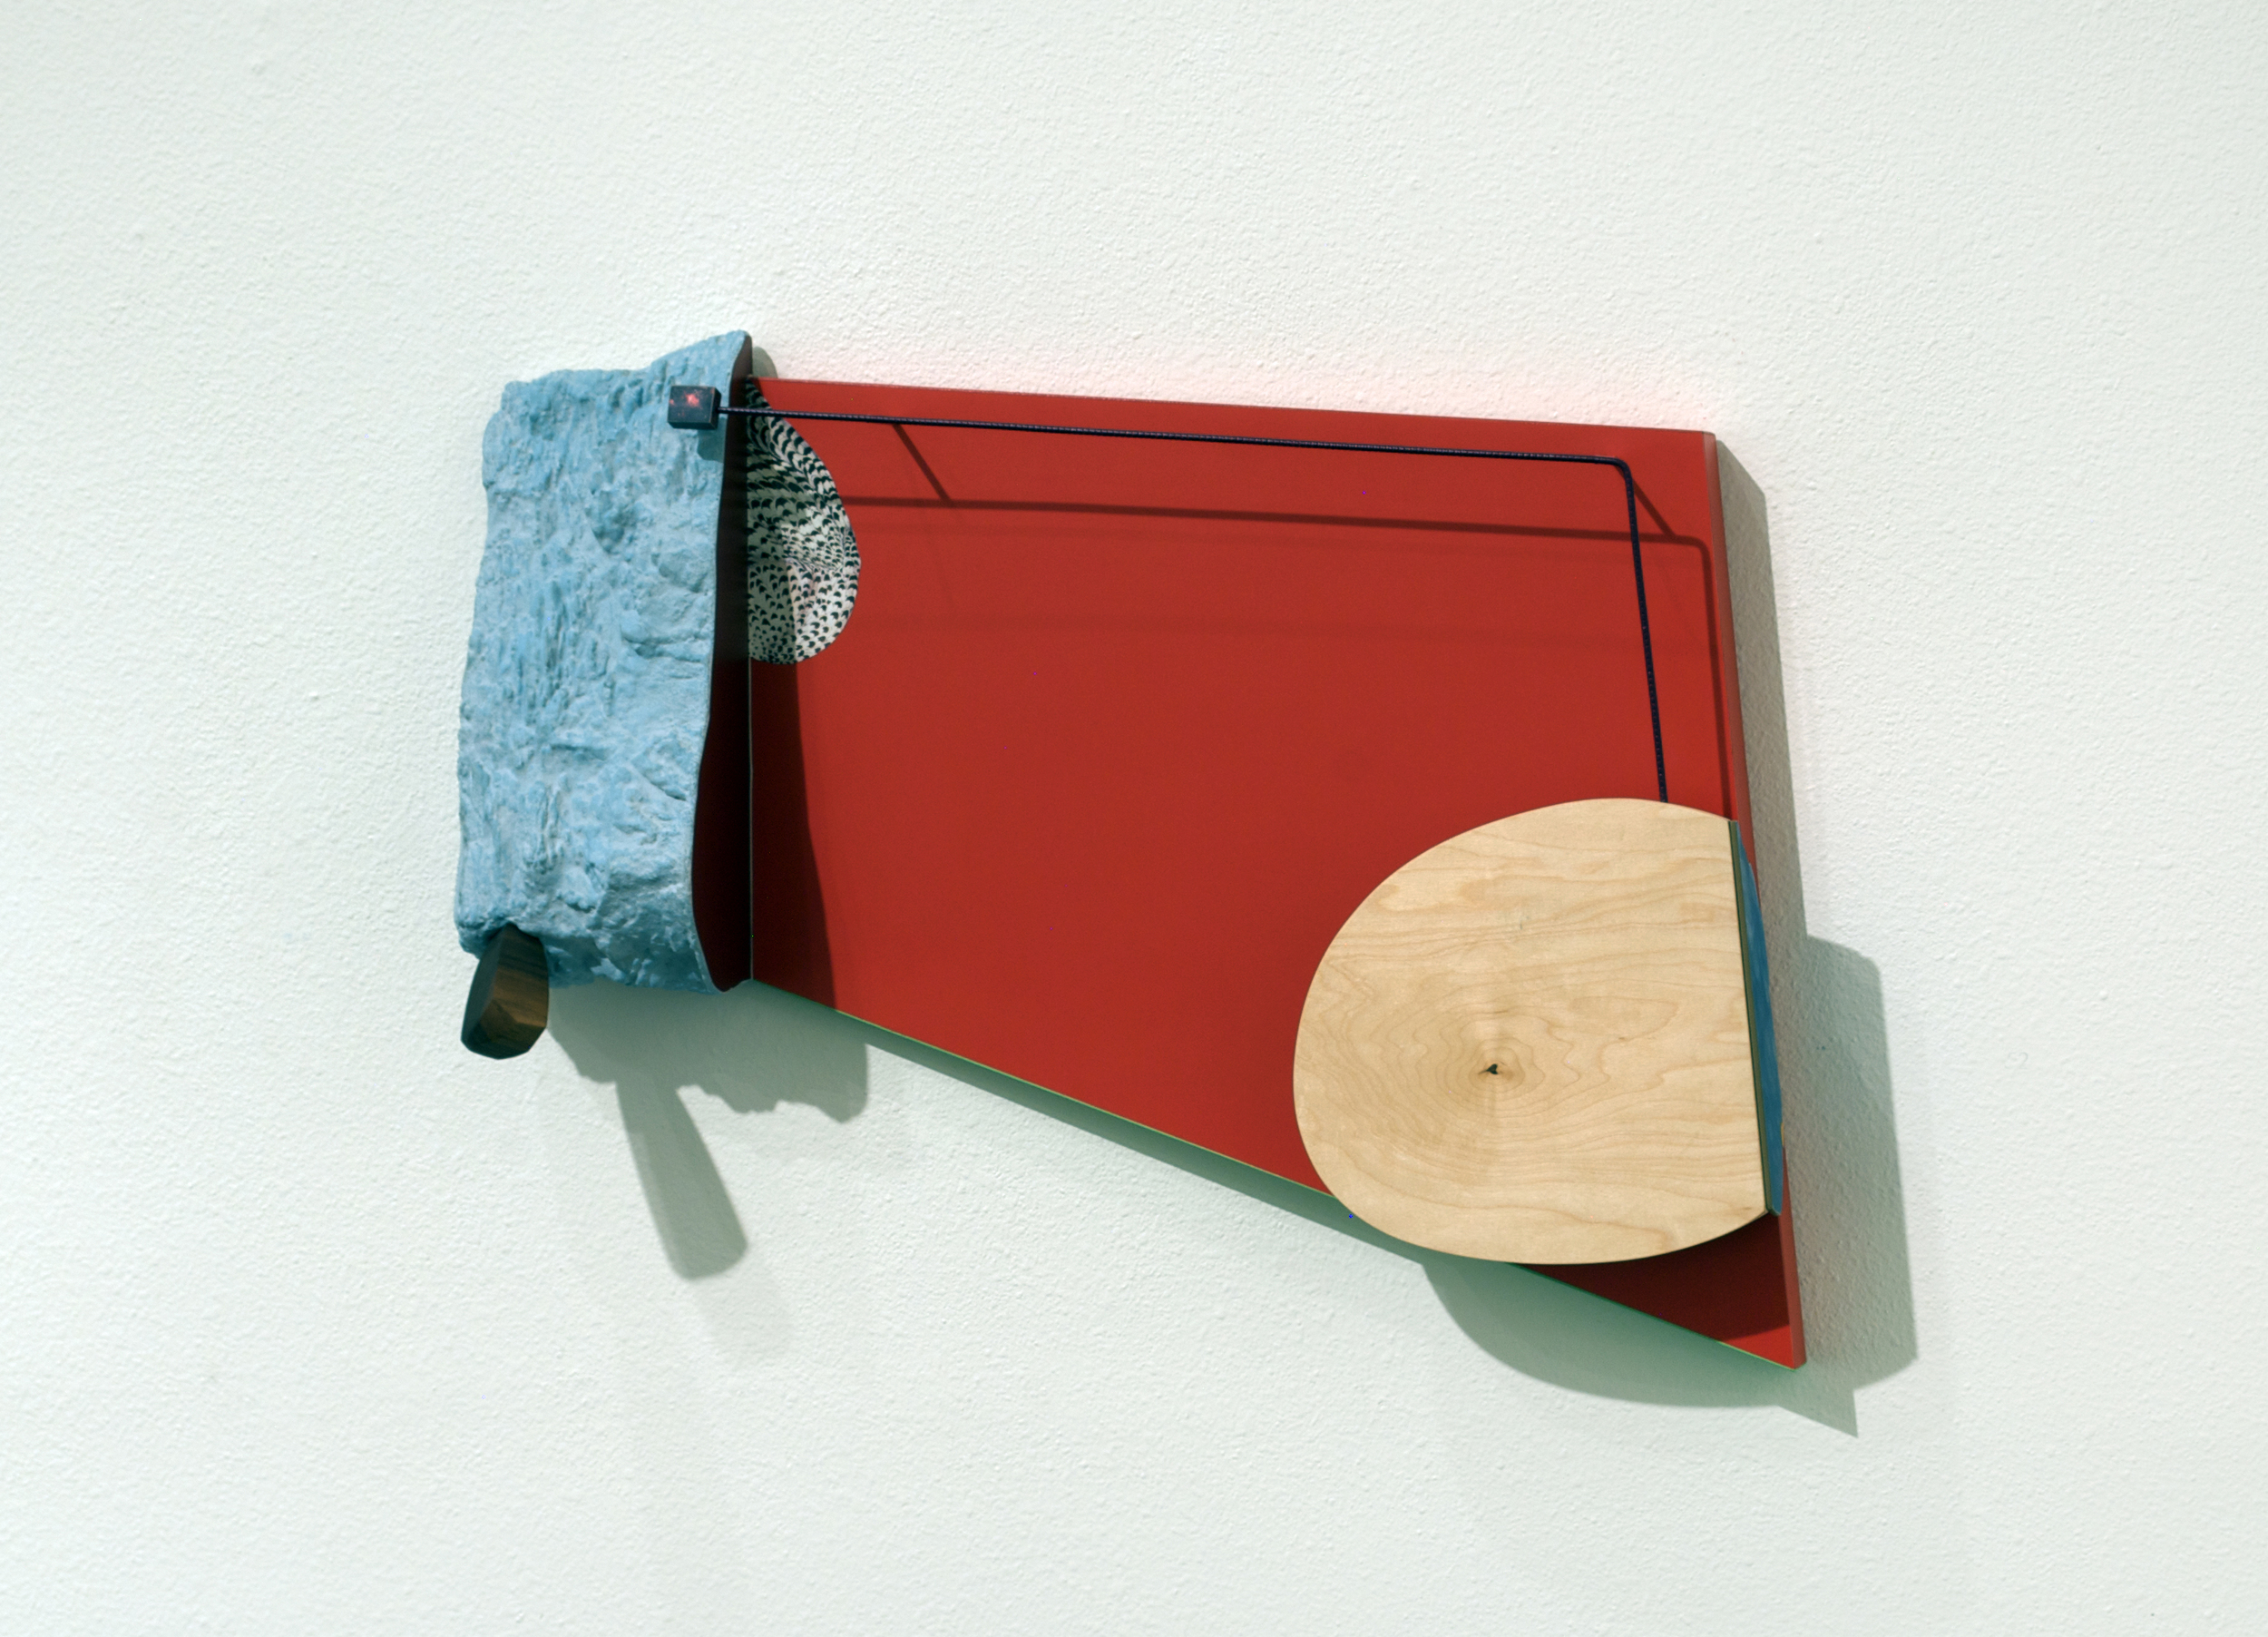 He smoked cigars and told funny jokes,  2012  wood, formica, foam, paint, and cut paper. 20 x 28 x 6.5 inches